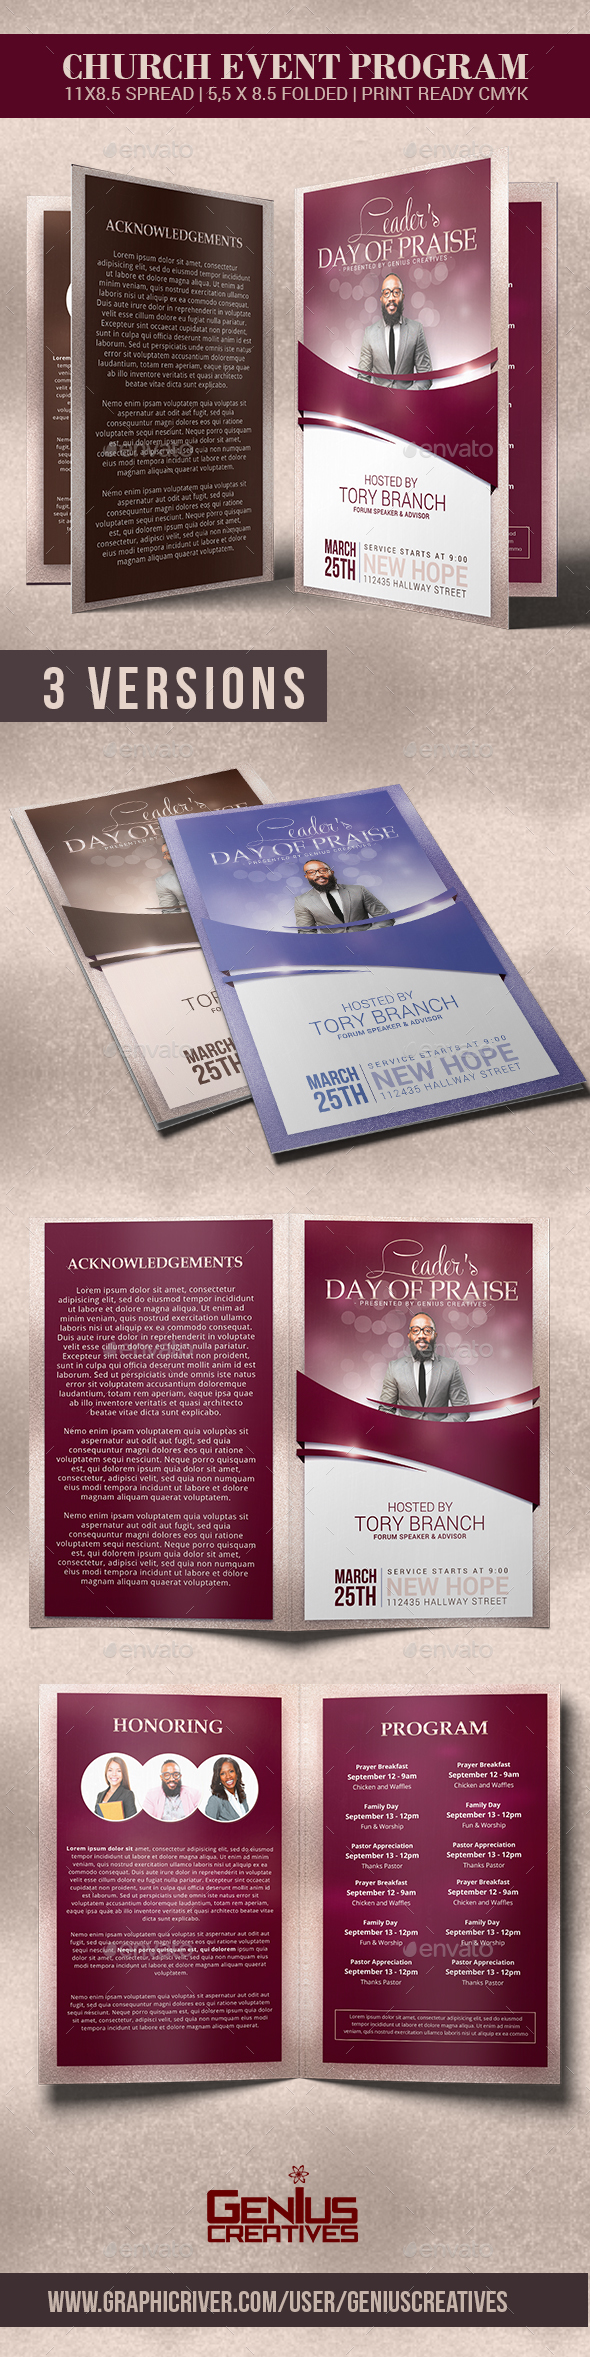 Leader's Day of Praise Church Program Template - Informational Brochures